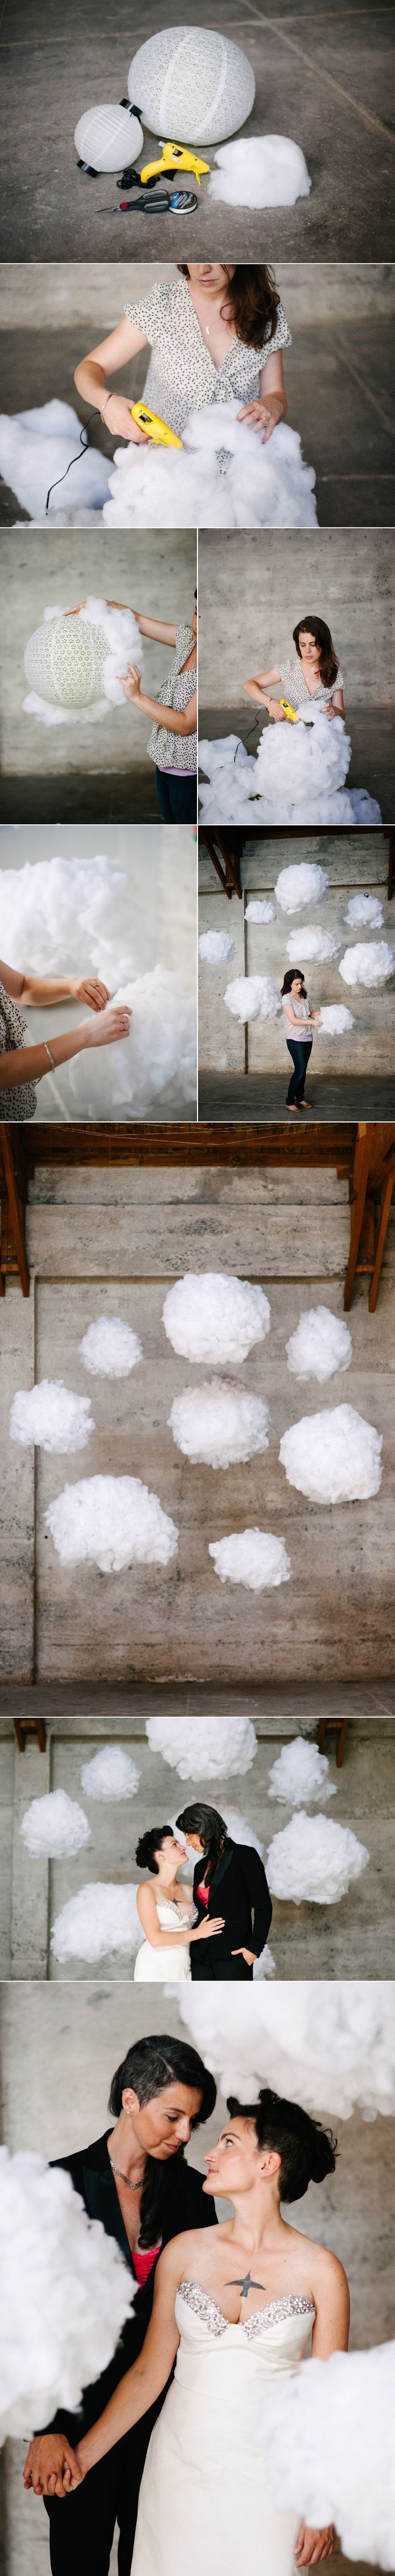 How To: Surreal DIY Cloud Backdrop (supposedly for weddings but probably awesome in my house):